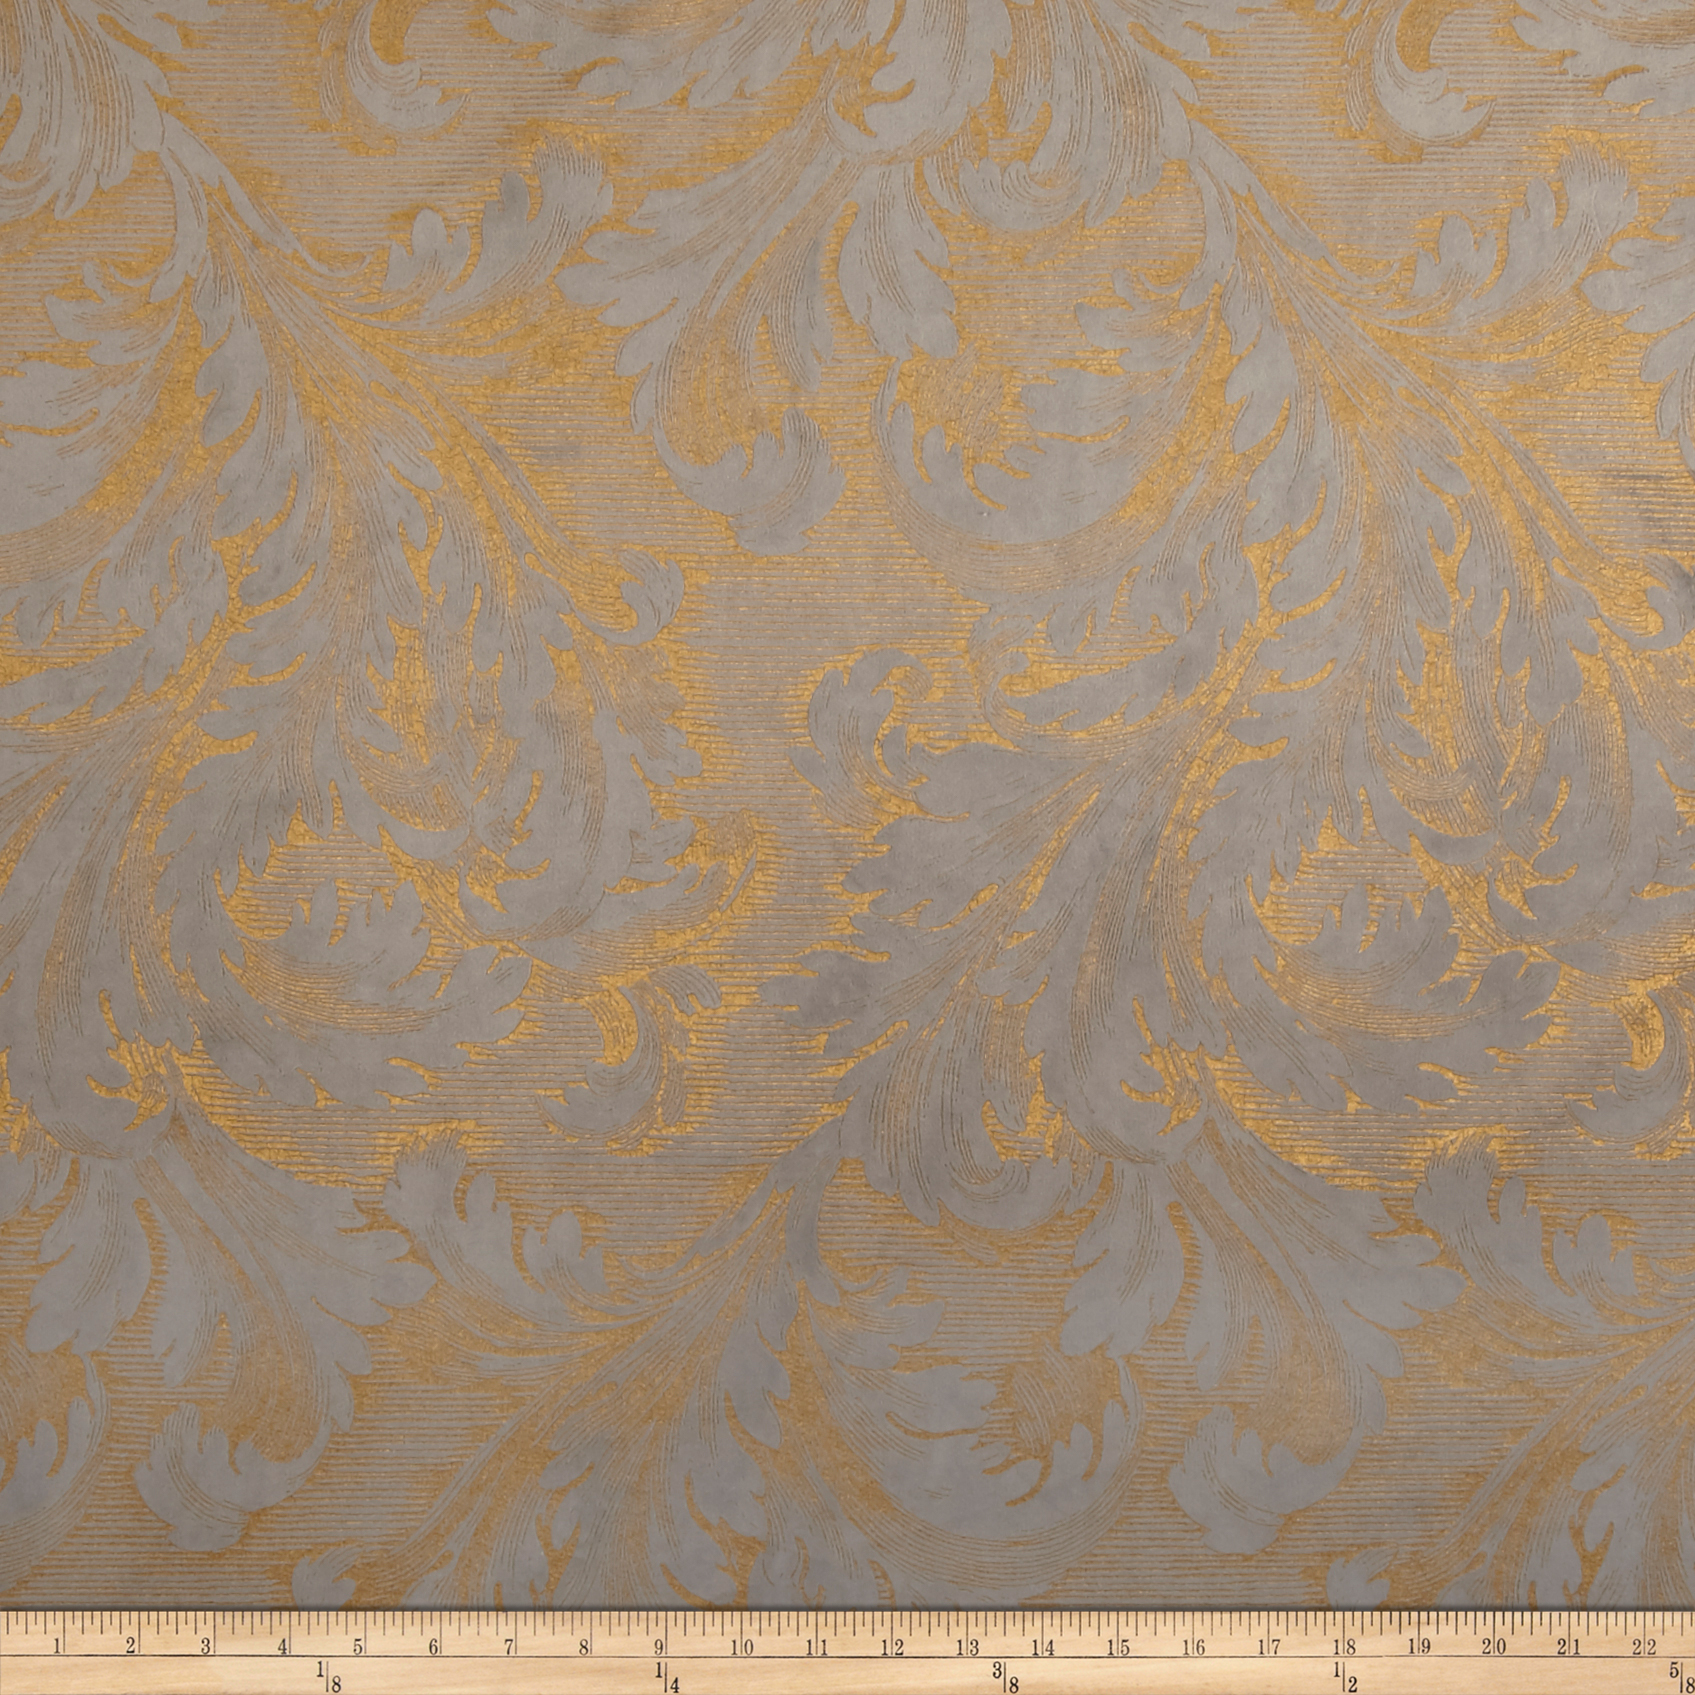 Waverly Scroll Call Velvet Glimmer Fabric by Waverly in USA